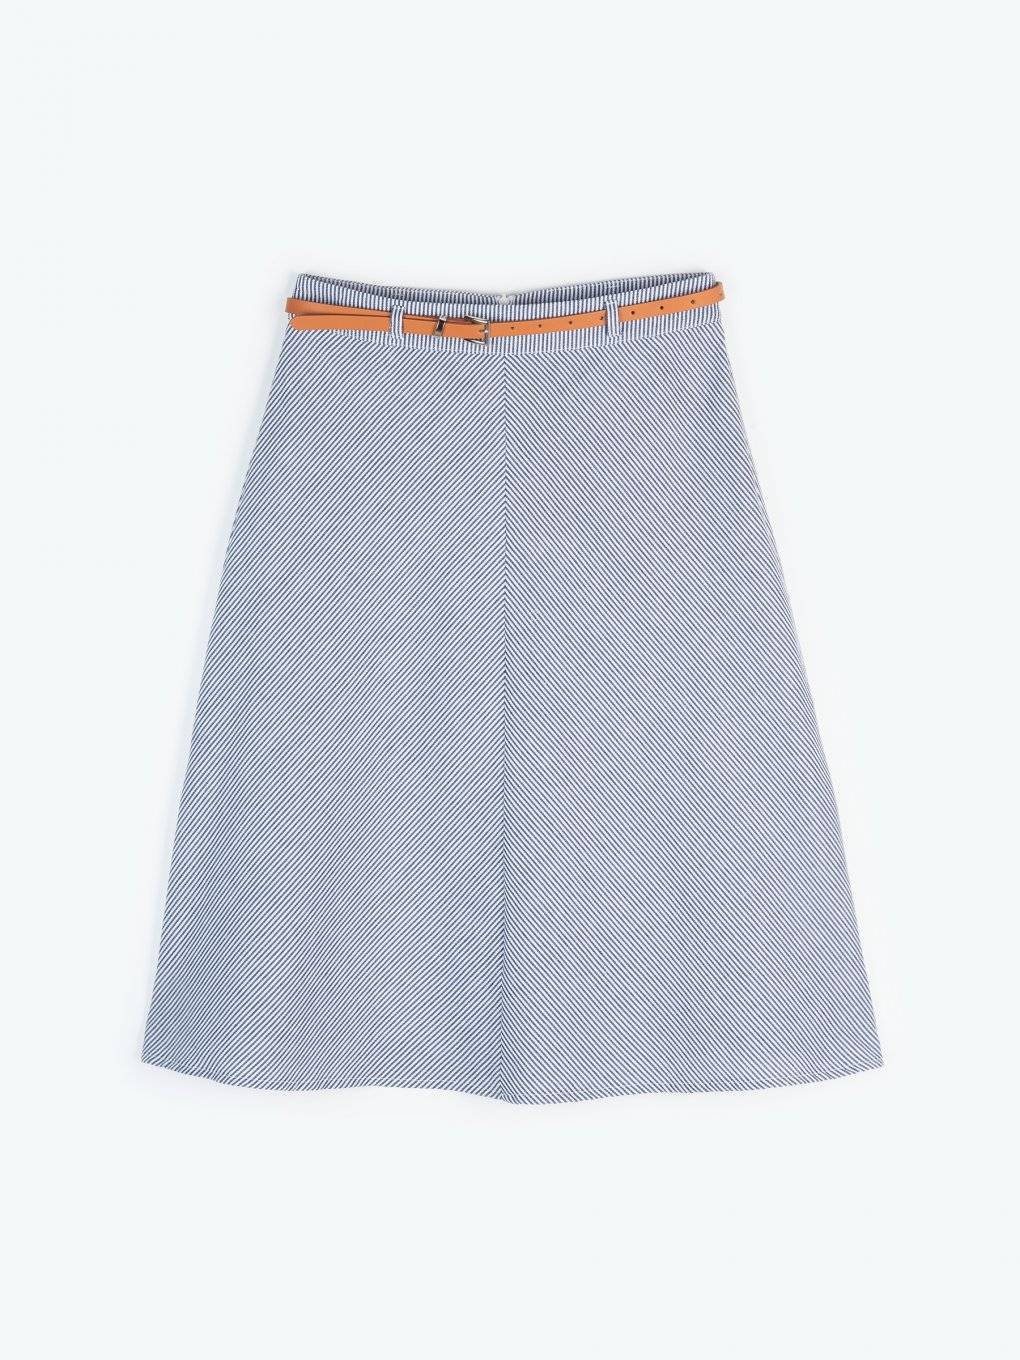 A-line striped skirt with belt